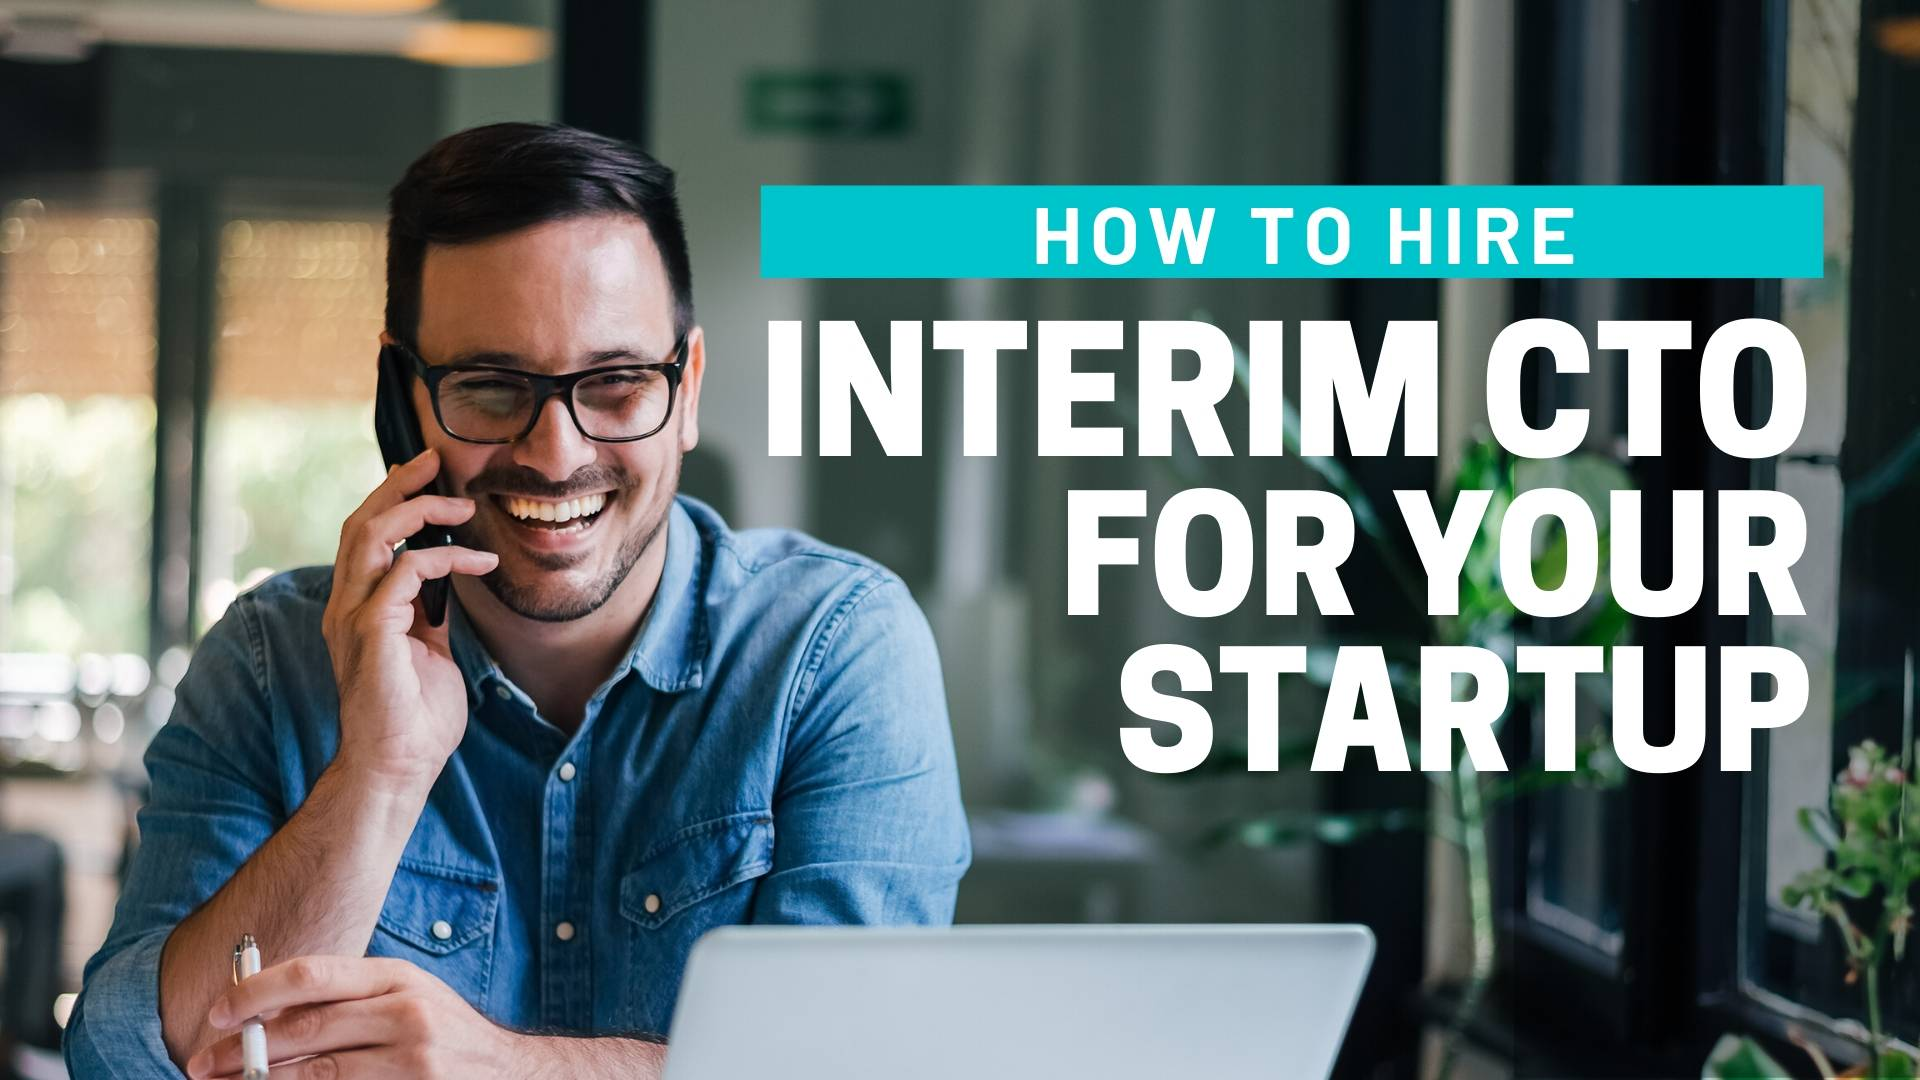 How To Hire An Interim CTO For Your Startup